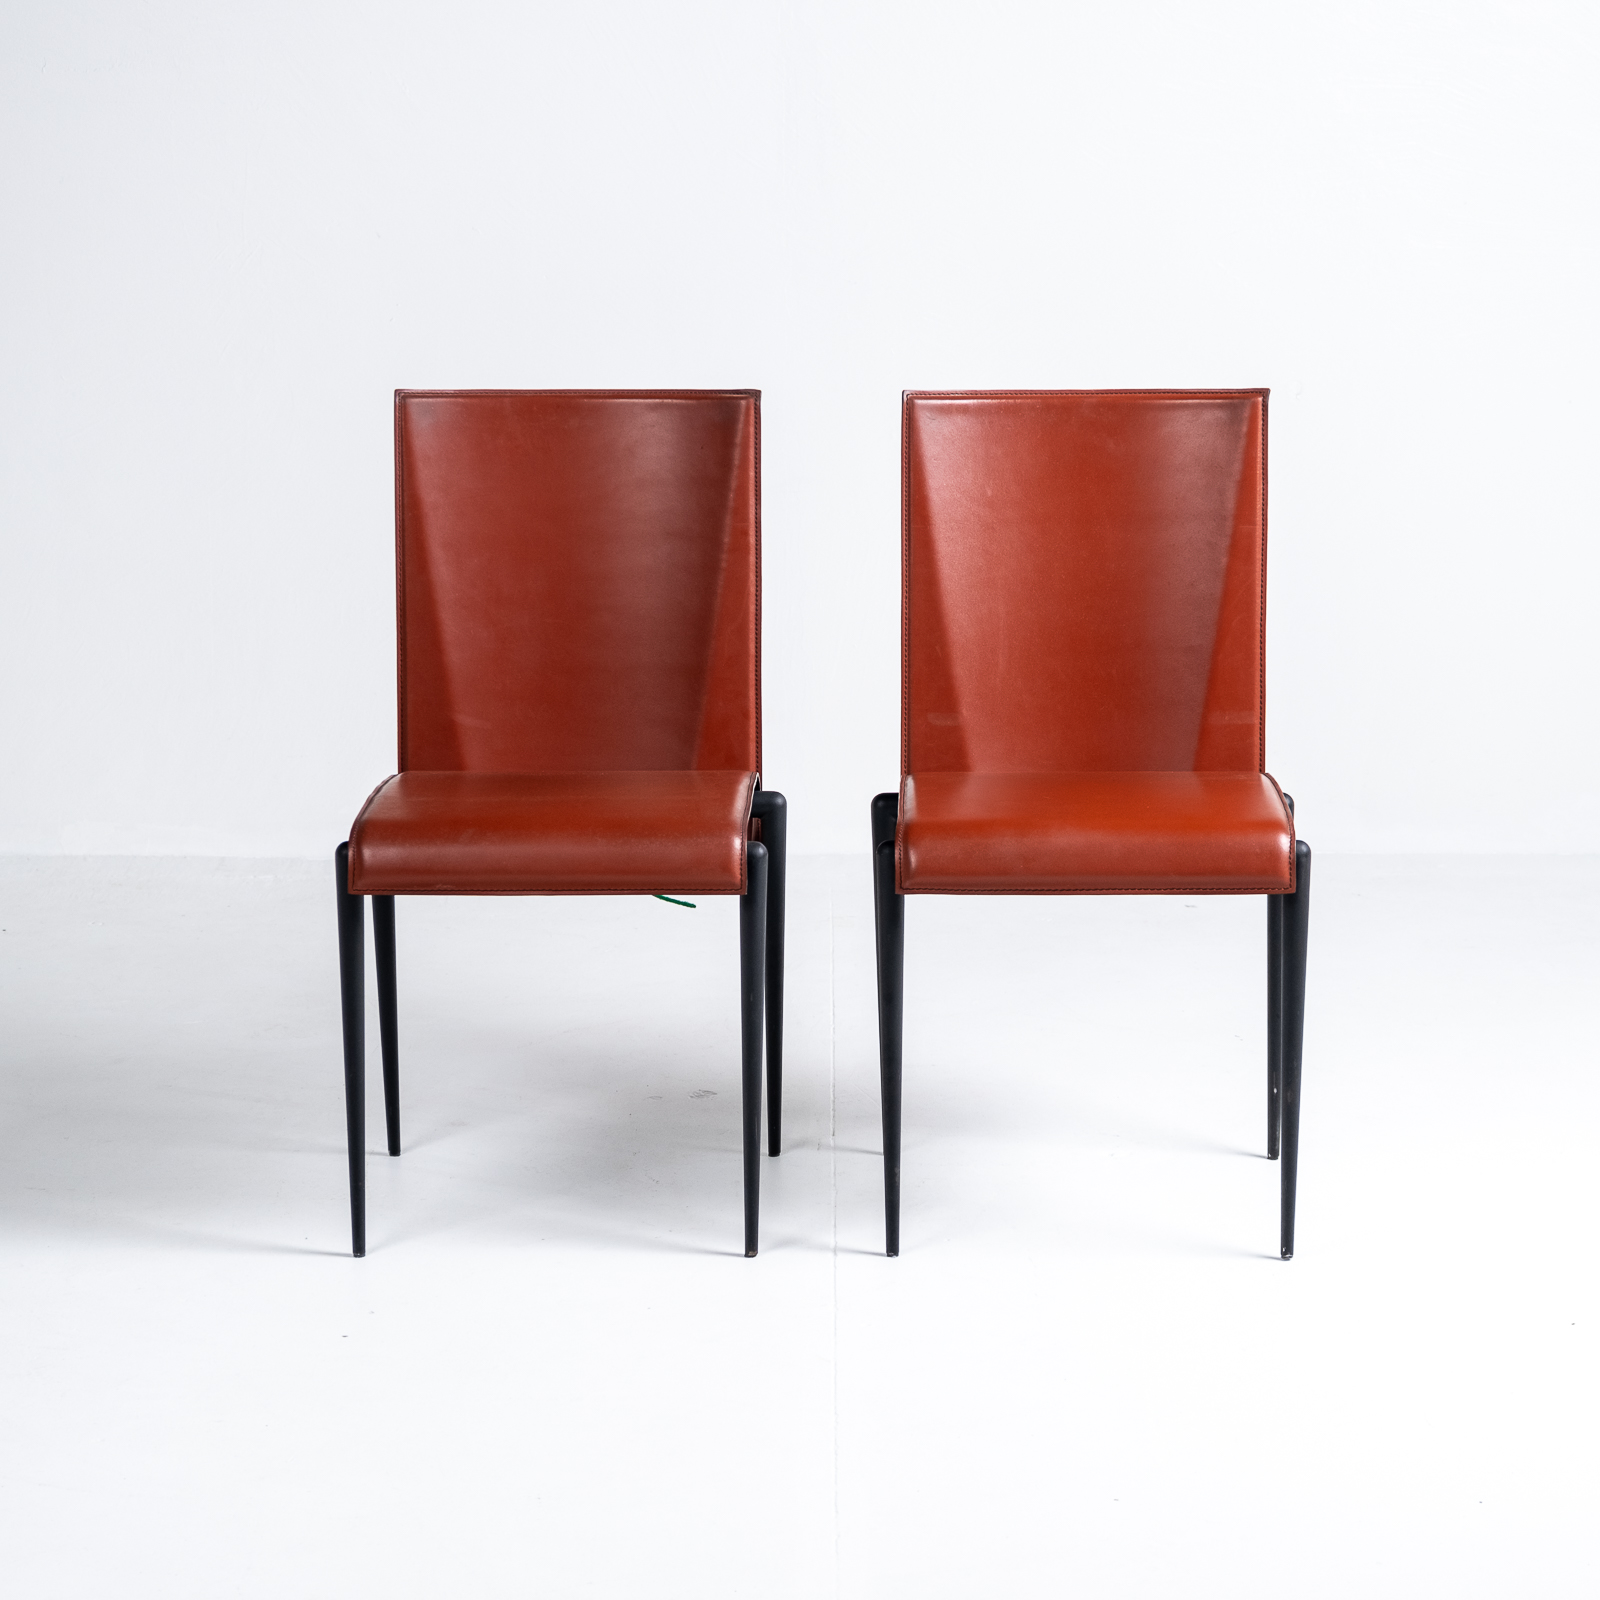 High Back Chair By Cidue In Red Leather, 1970s, Italy 03